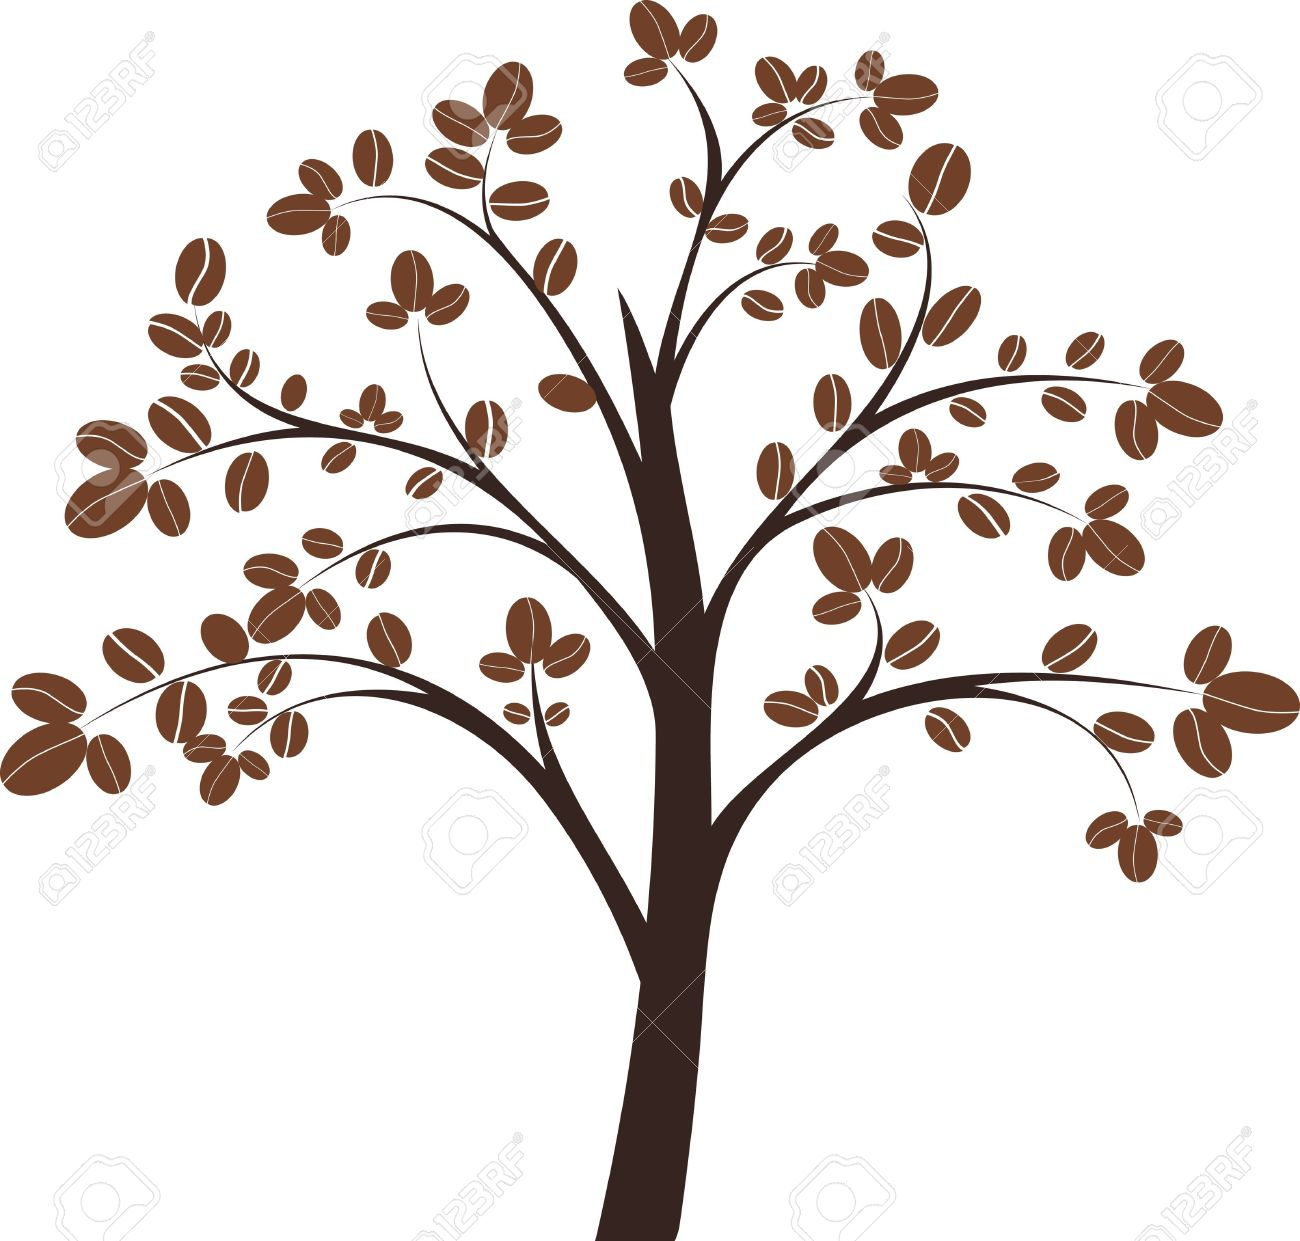 Coffee Tree On White Background Illustration Royalty Free Cliparts.